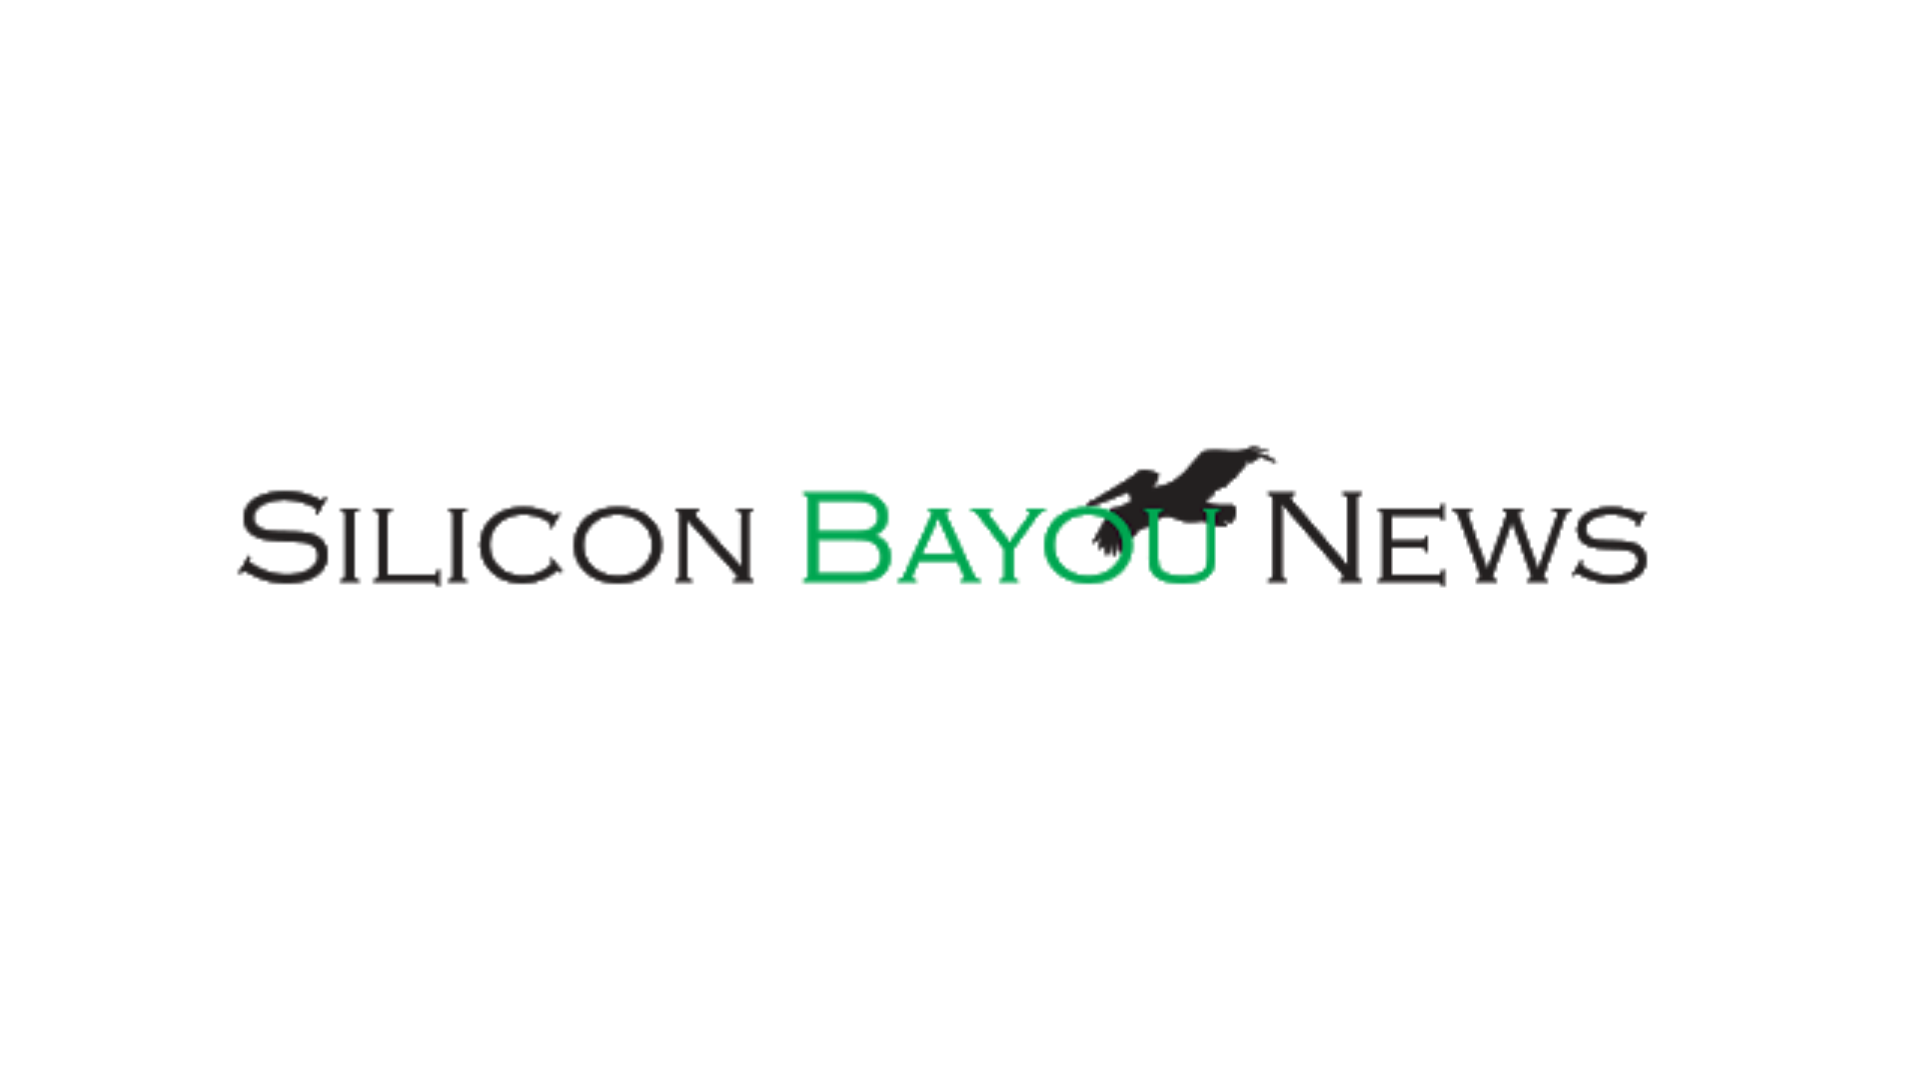 Silicon Bayou News Chloe Capital Press